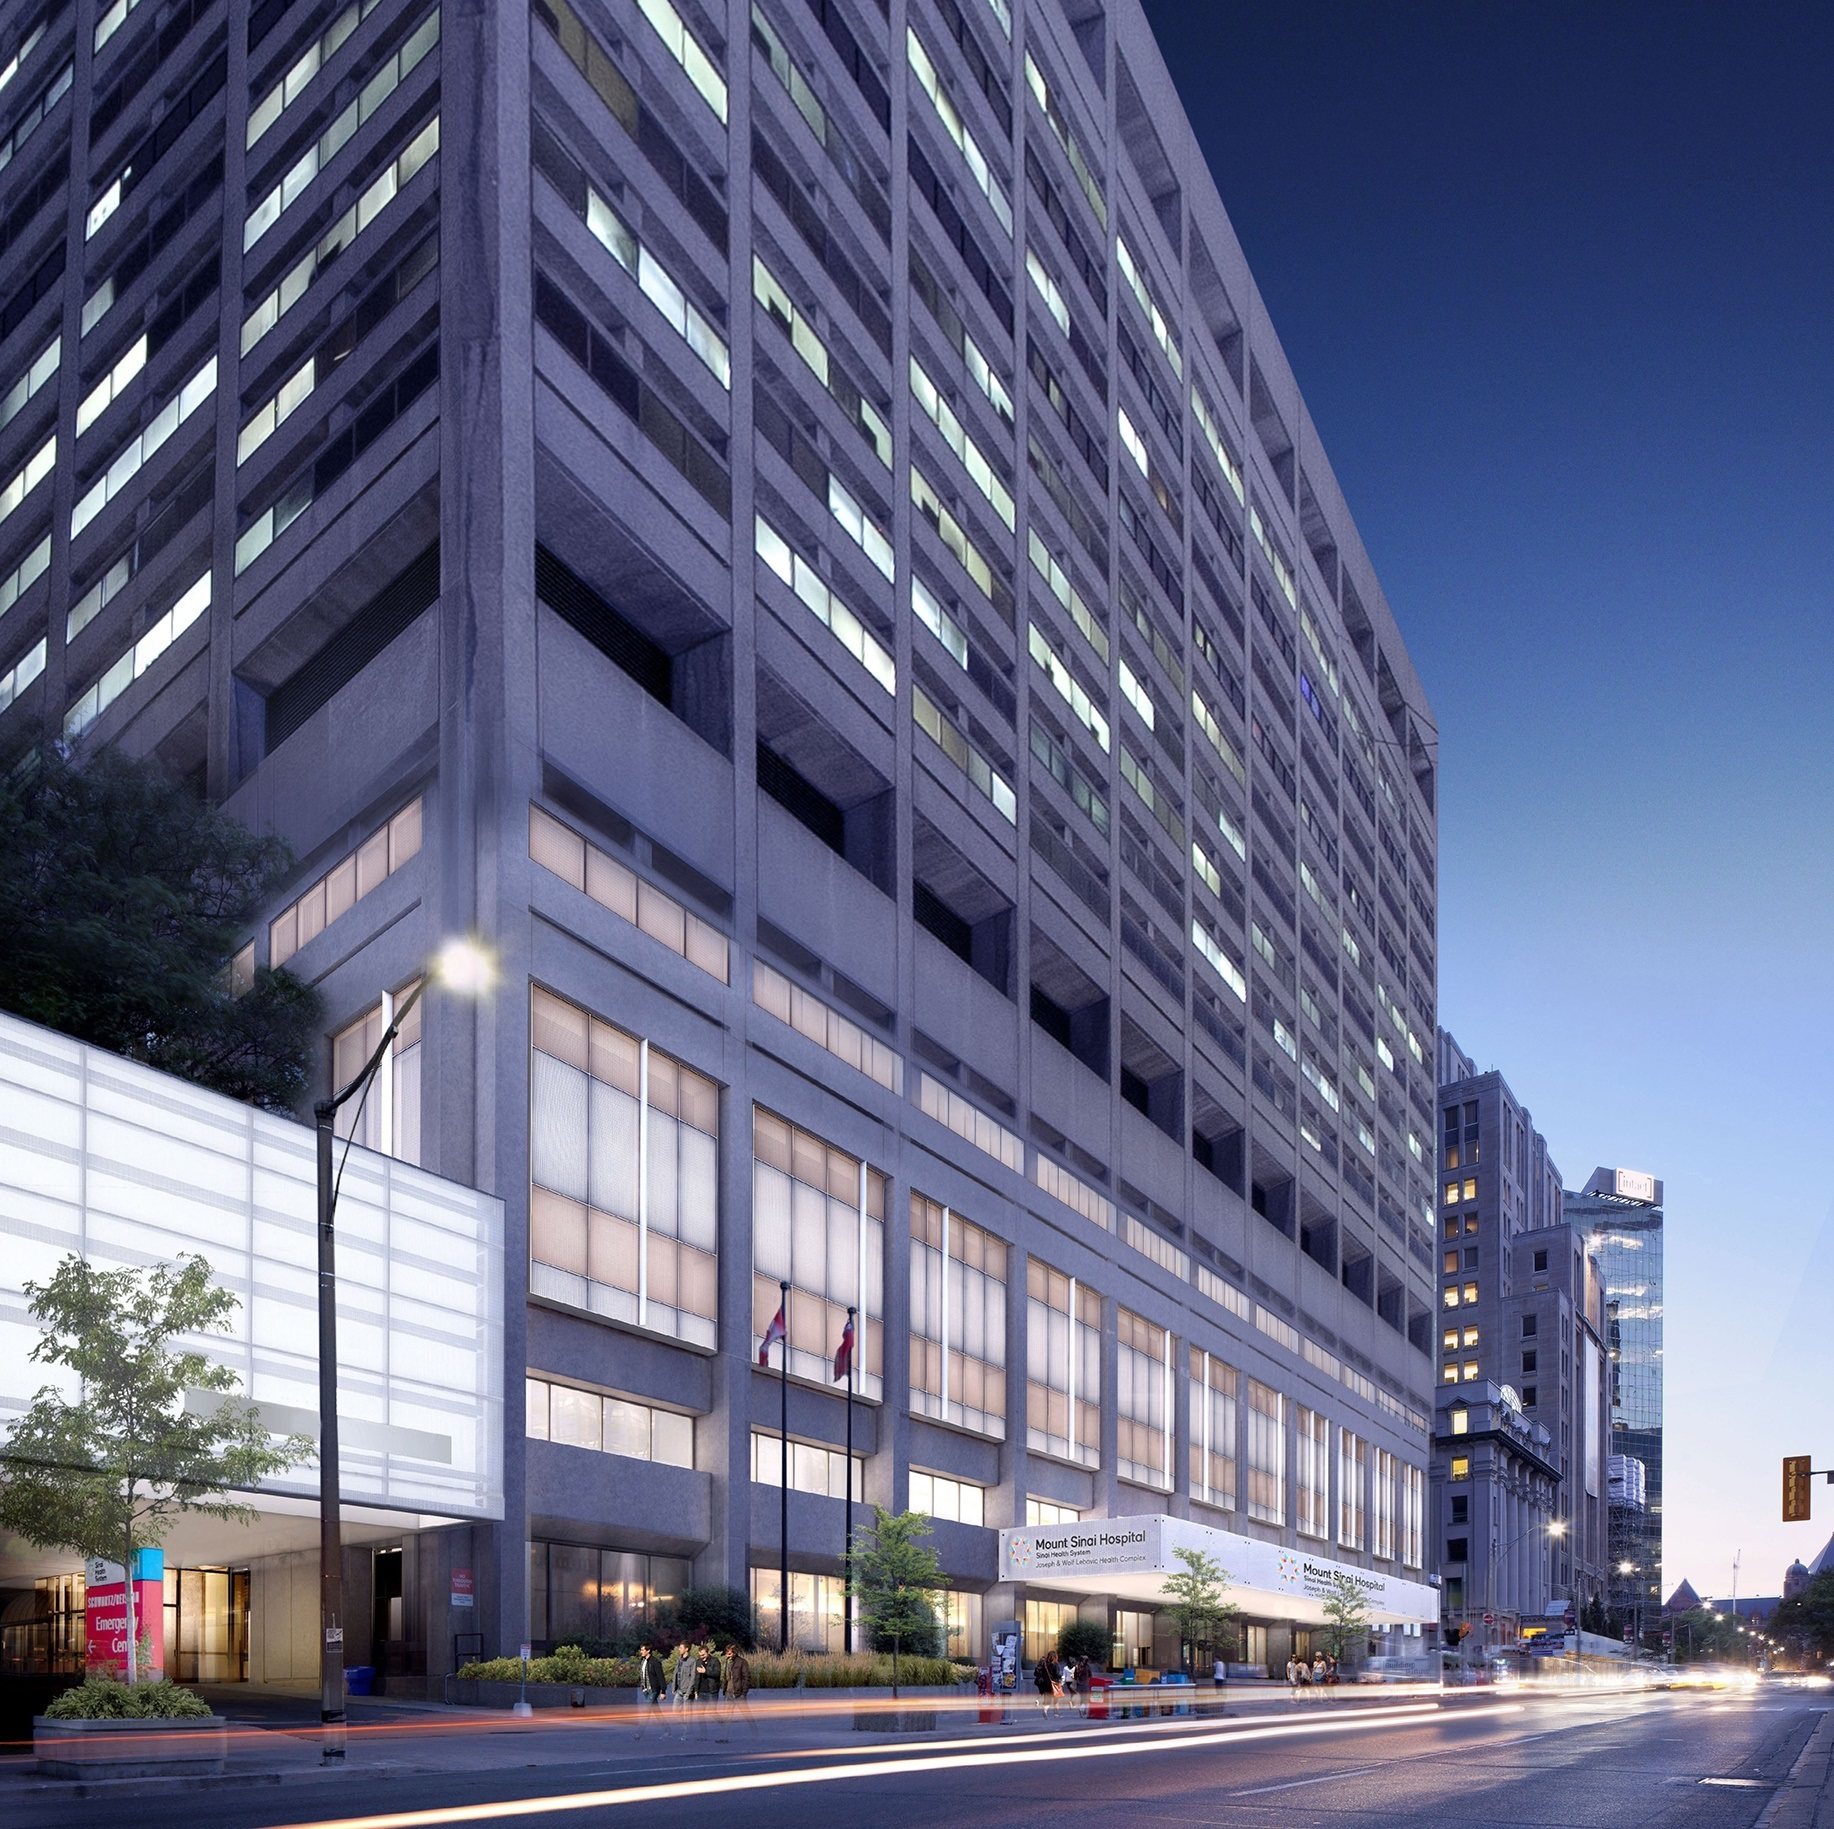 A computer generated rendering that shows Mount Sinai Hospital from University avenue in the late evening. The rendering shows what the hospital's new facade will look like when the Renew Sinai Phase 3A Redevelopment project is complete.